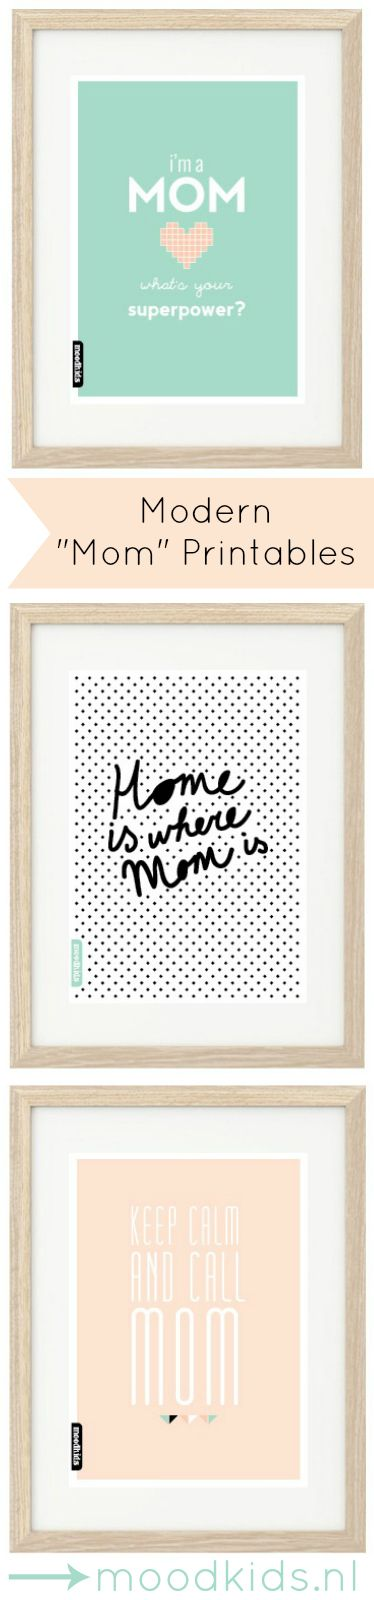 LOVE these Modern Mother's Day Printables by Moodkids